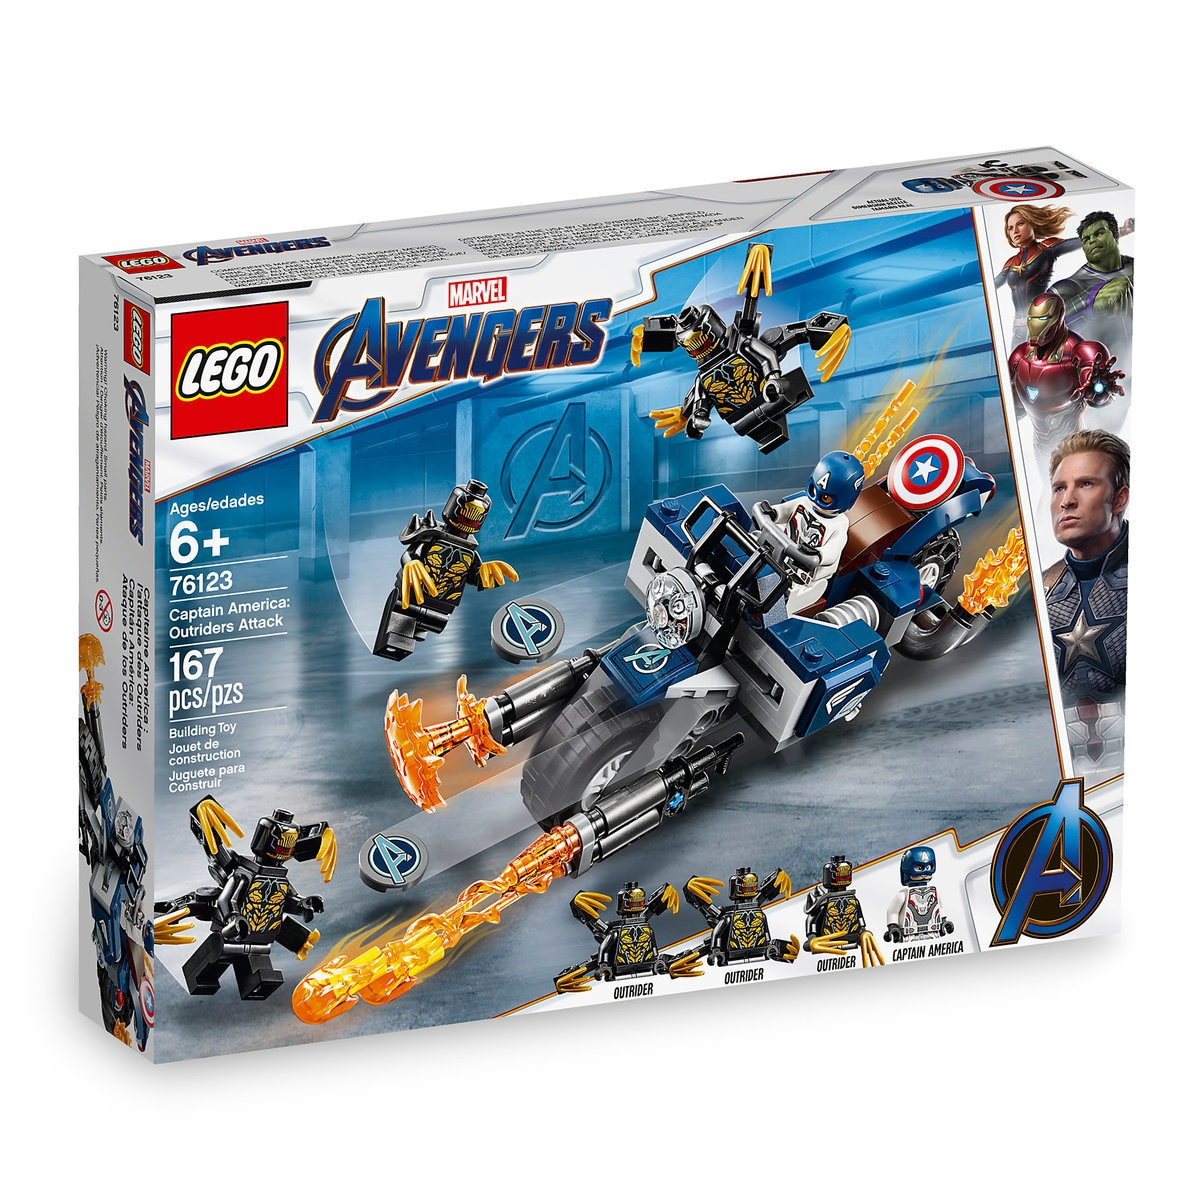 Lego Captain AvengersEndgame Attack Marvel's America Outriders Set Play By N8vmnw0O